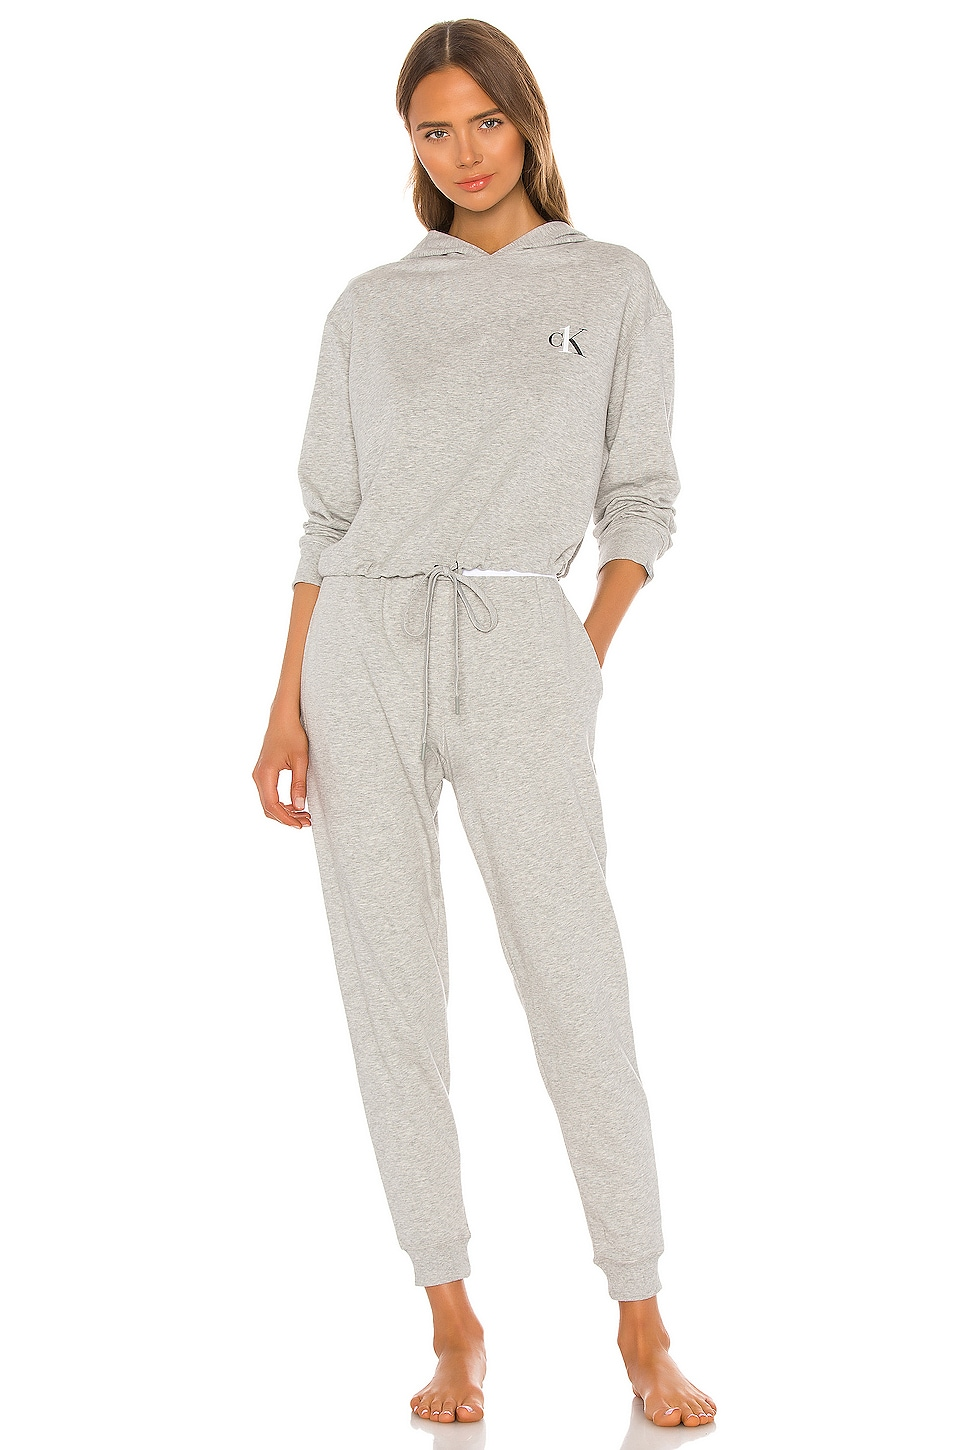 One Basic Lounge Sweatpant, view 4, click to view large image.